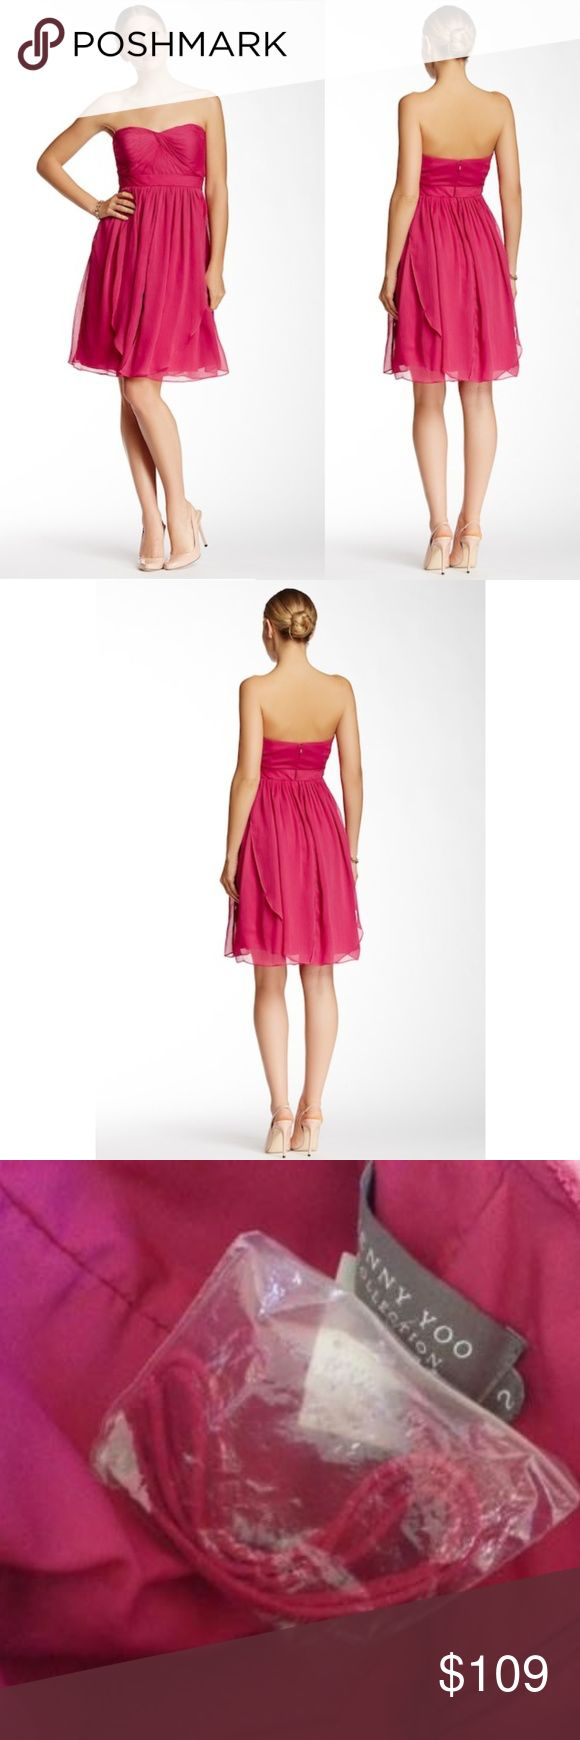 """NEW Jenny Yoo Keira Luxe Crinkle Chiffon Dress NWT Jenny Yoo Keira Luxe Crinkle Chiffon Dress. A knotted twist shapes the pleated sweetheart bodice of a strapless chiffon dress designed with long panels that can be artfully wrapped and tied around the bodice to create more than 15 elegant looks. Size 2 Color Pink Approximate measurements are Bust 33"""", Waist 26"""", & Length 31"""" Hidden back zip with hook-and-eye closure Fully lined, with padded cups and boning in bodice Tulle crinoline in skirt…"""